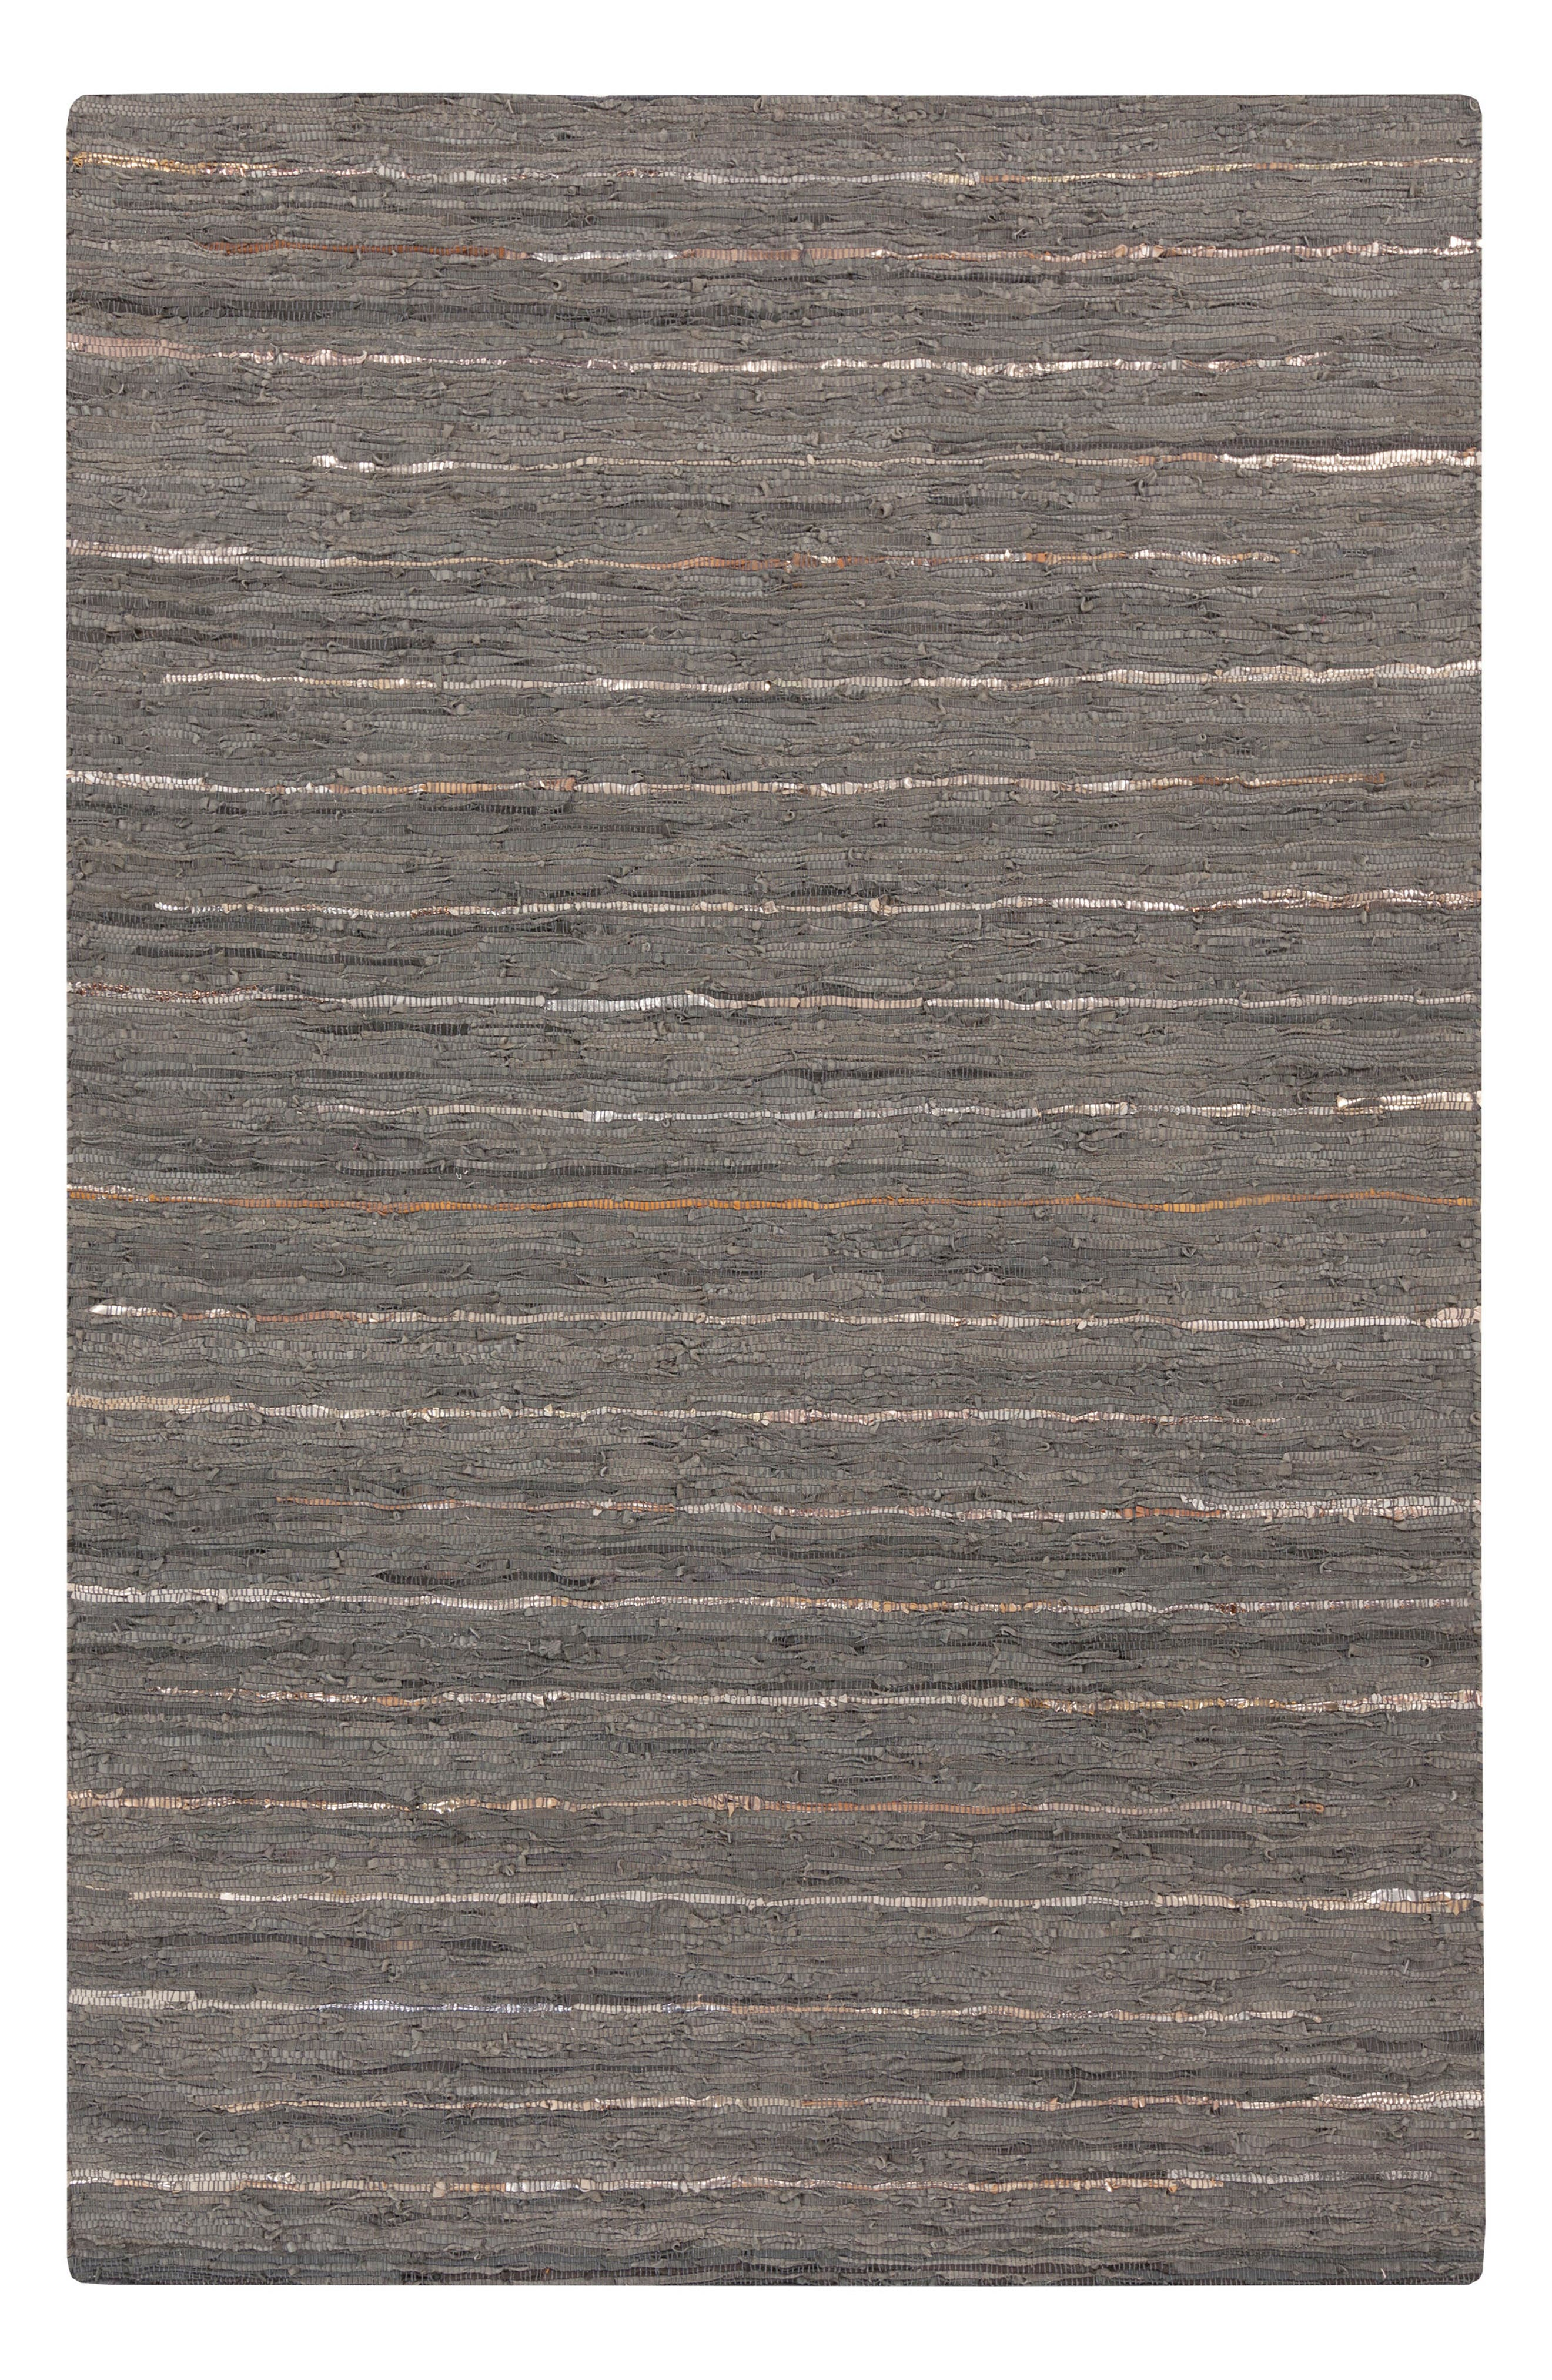 Anthracite Leather Rug,                             Main thumbnail 1, color,                             001